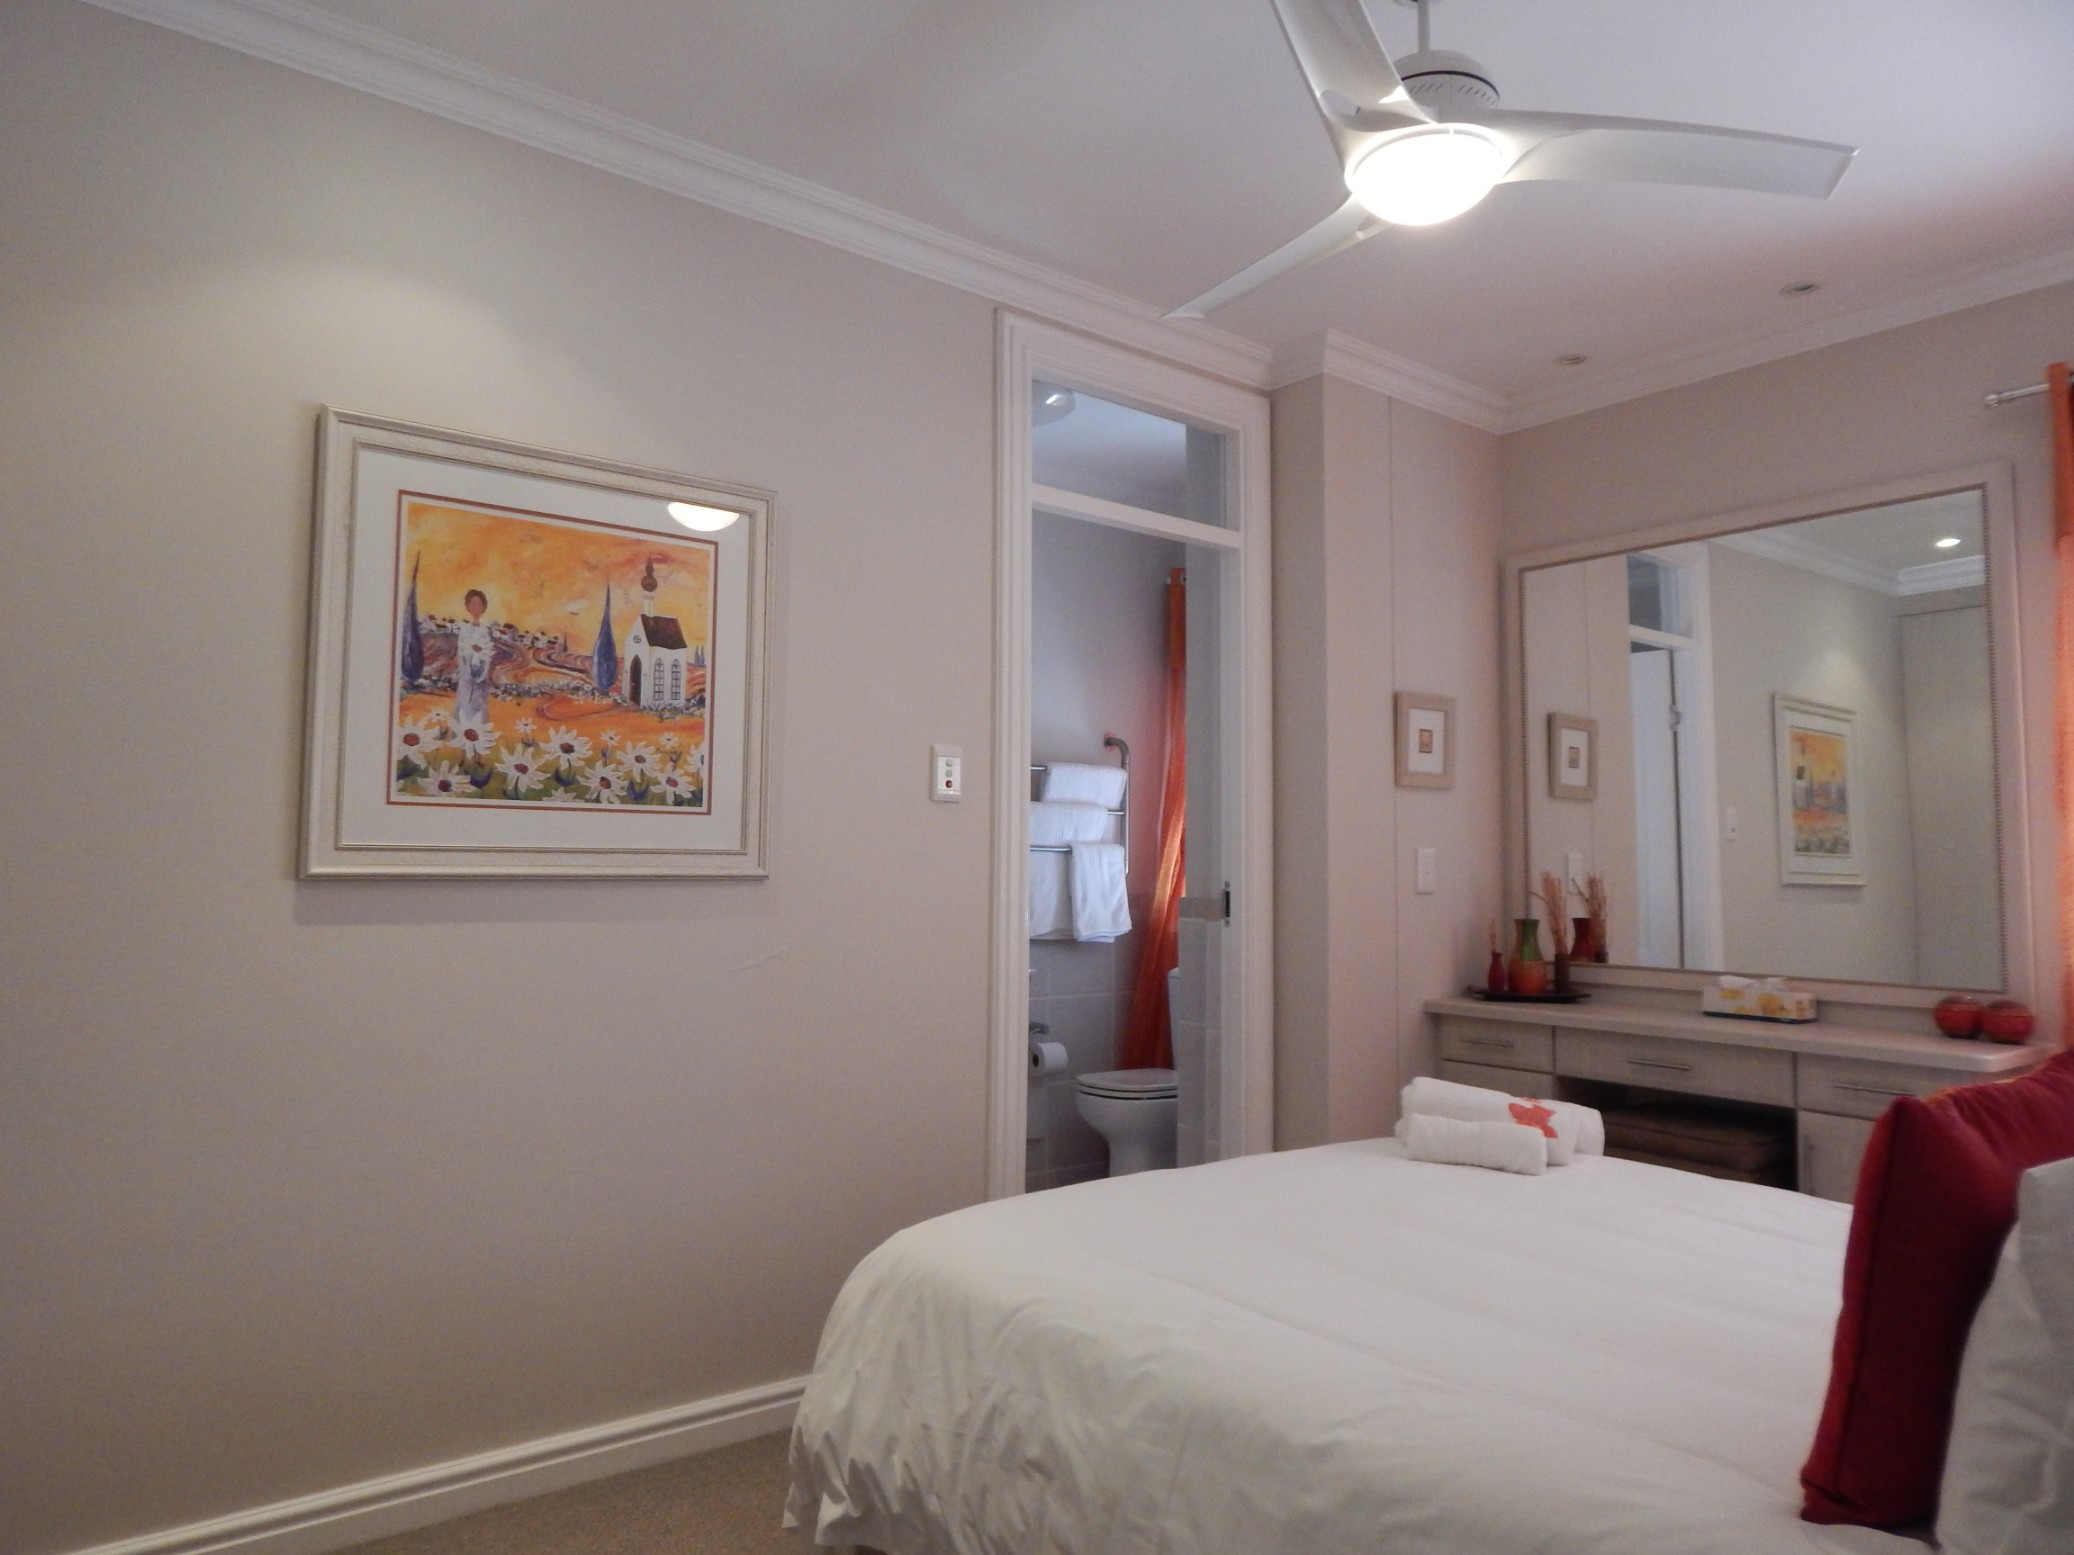 3 Bedroom Apartment for sale in Diaz Beach ENT0069020 : photo#20